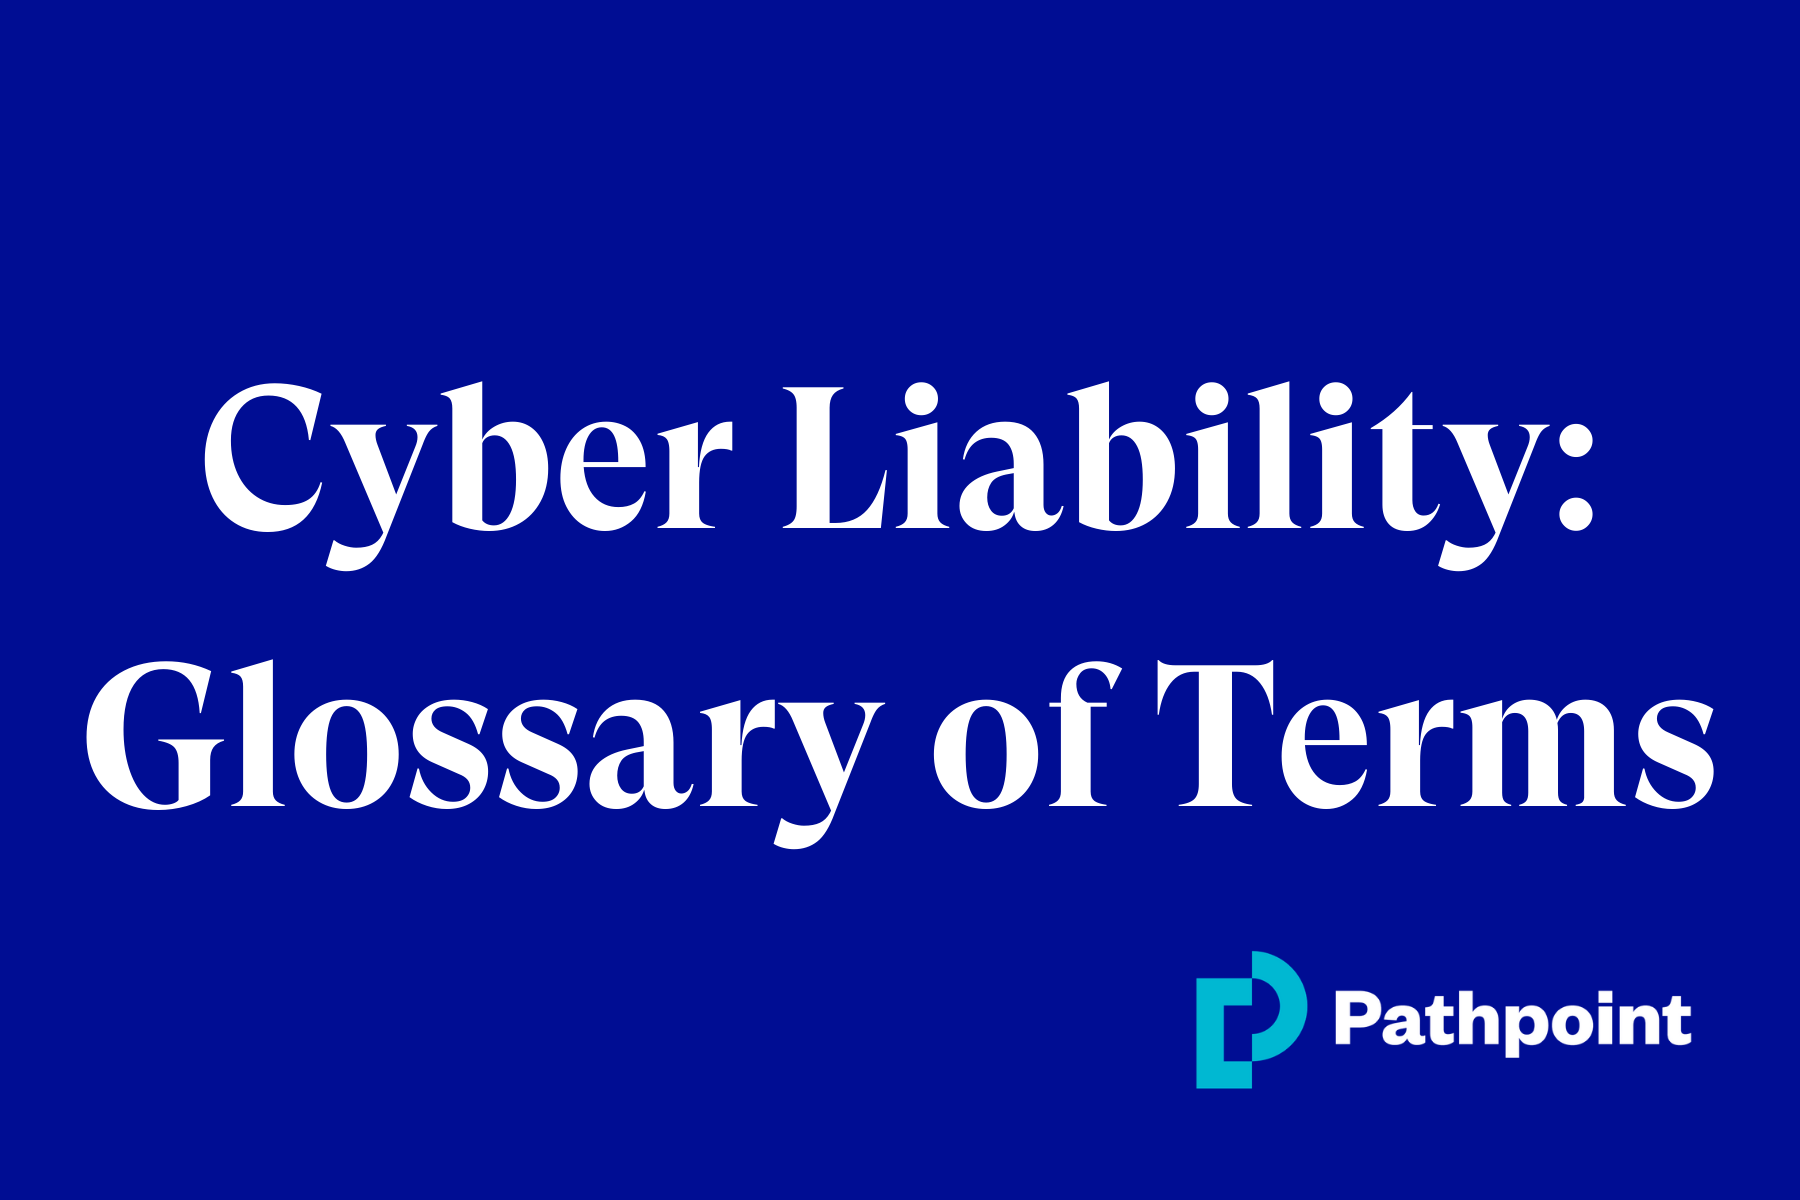 Cyber Liability: Glossary of Terms